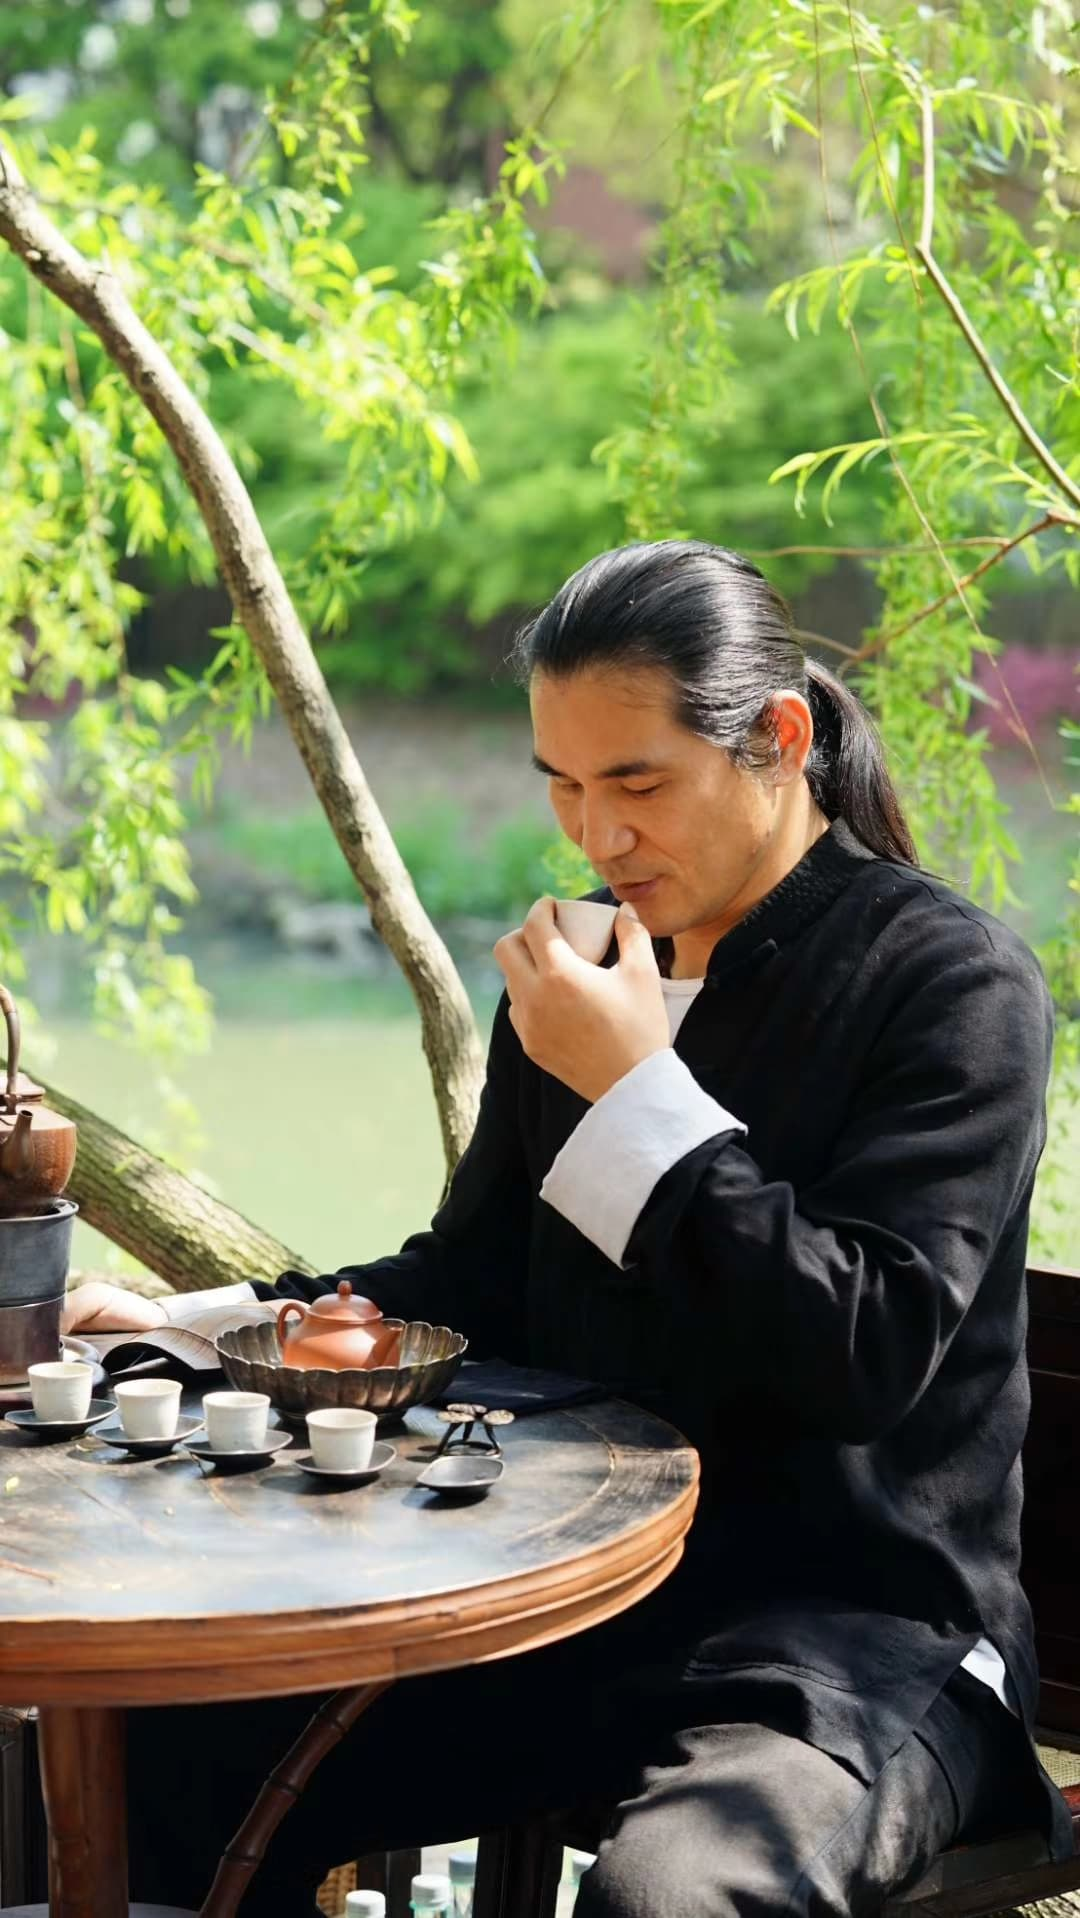 Wudang Travel: What Do You Need In Your Bag?